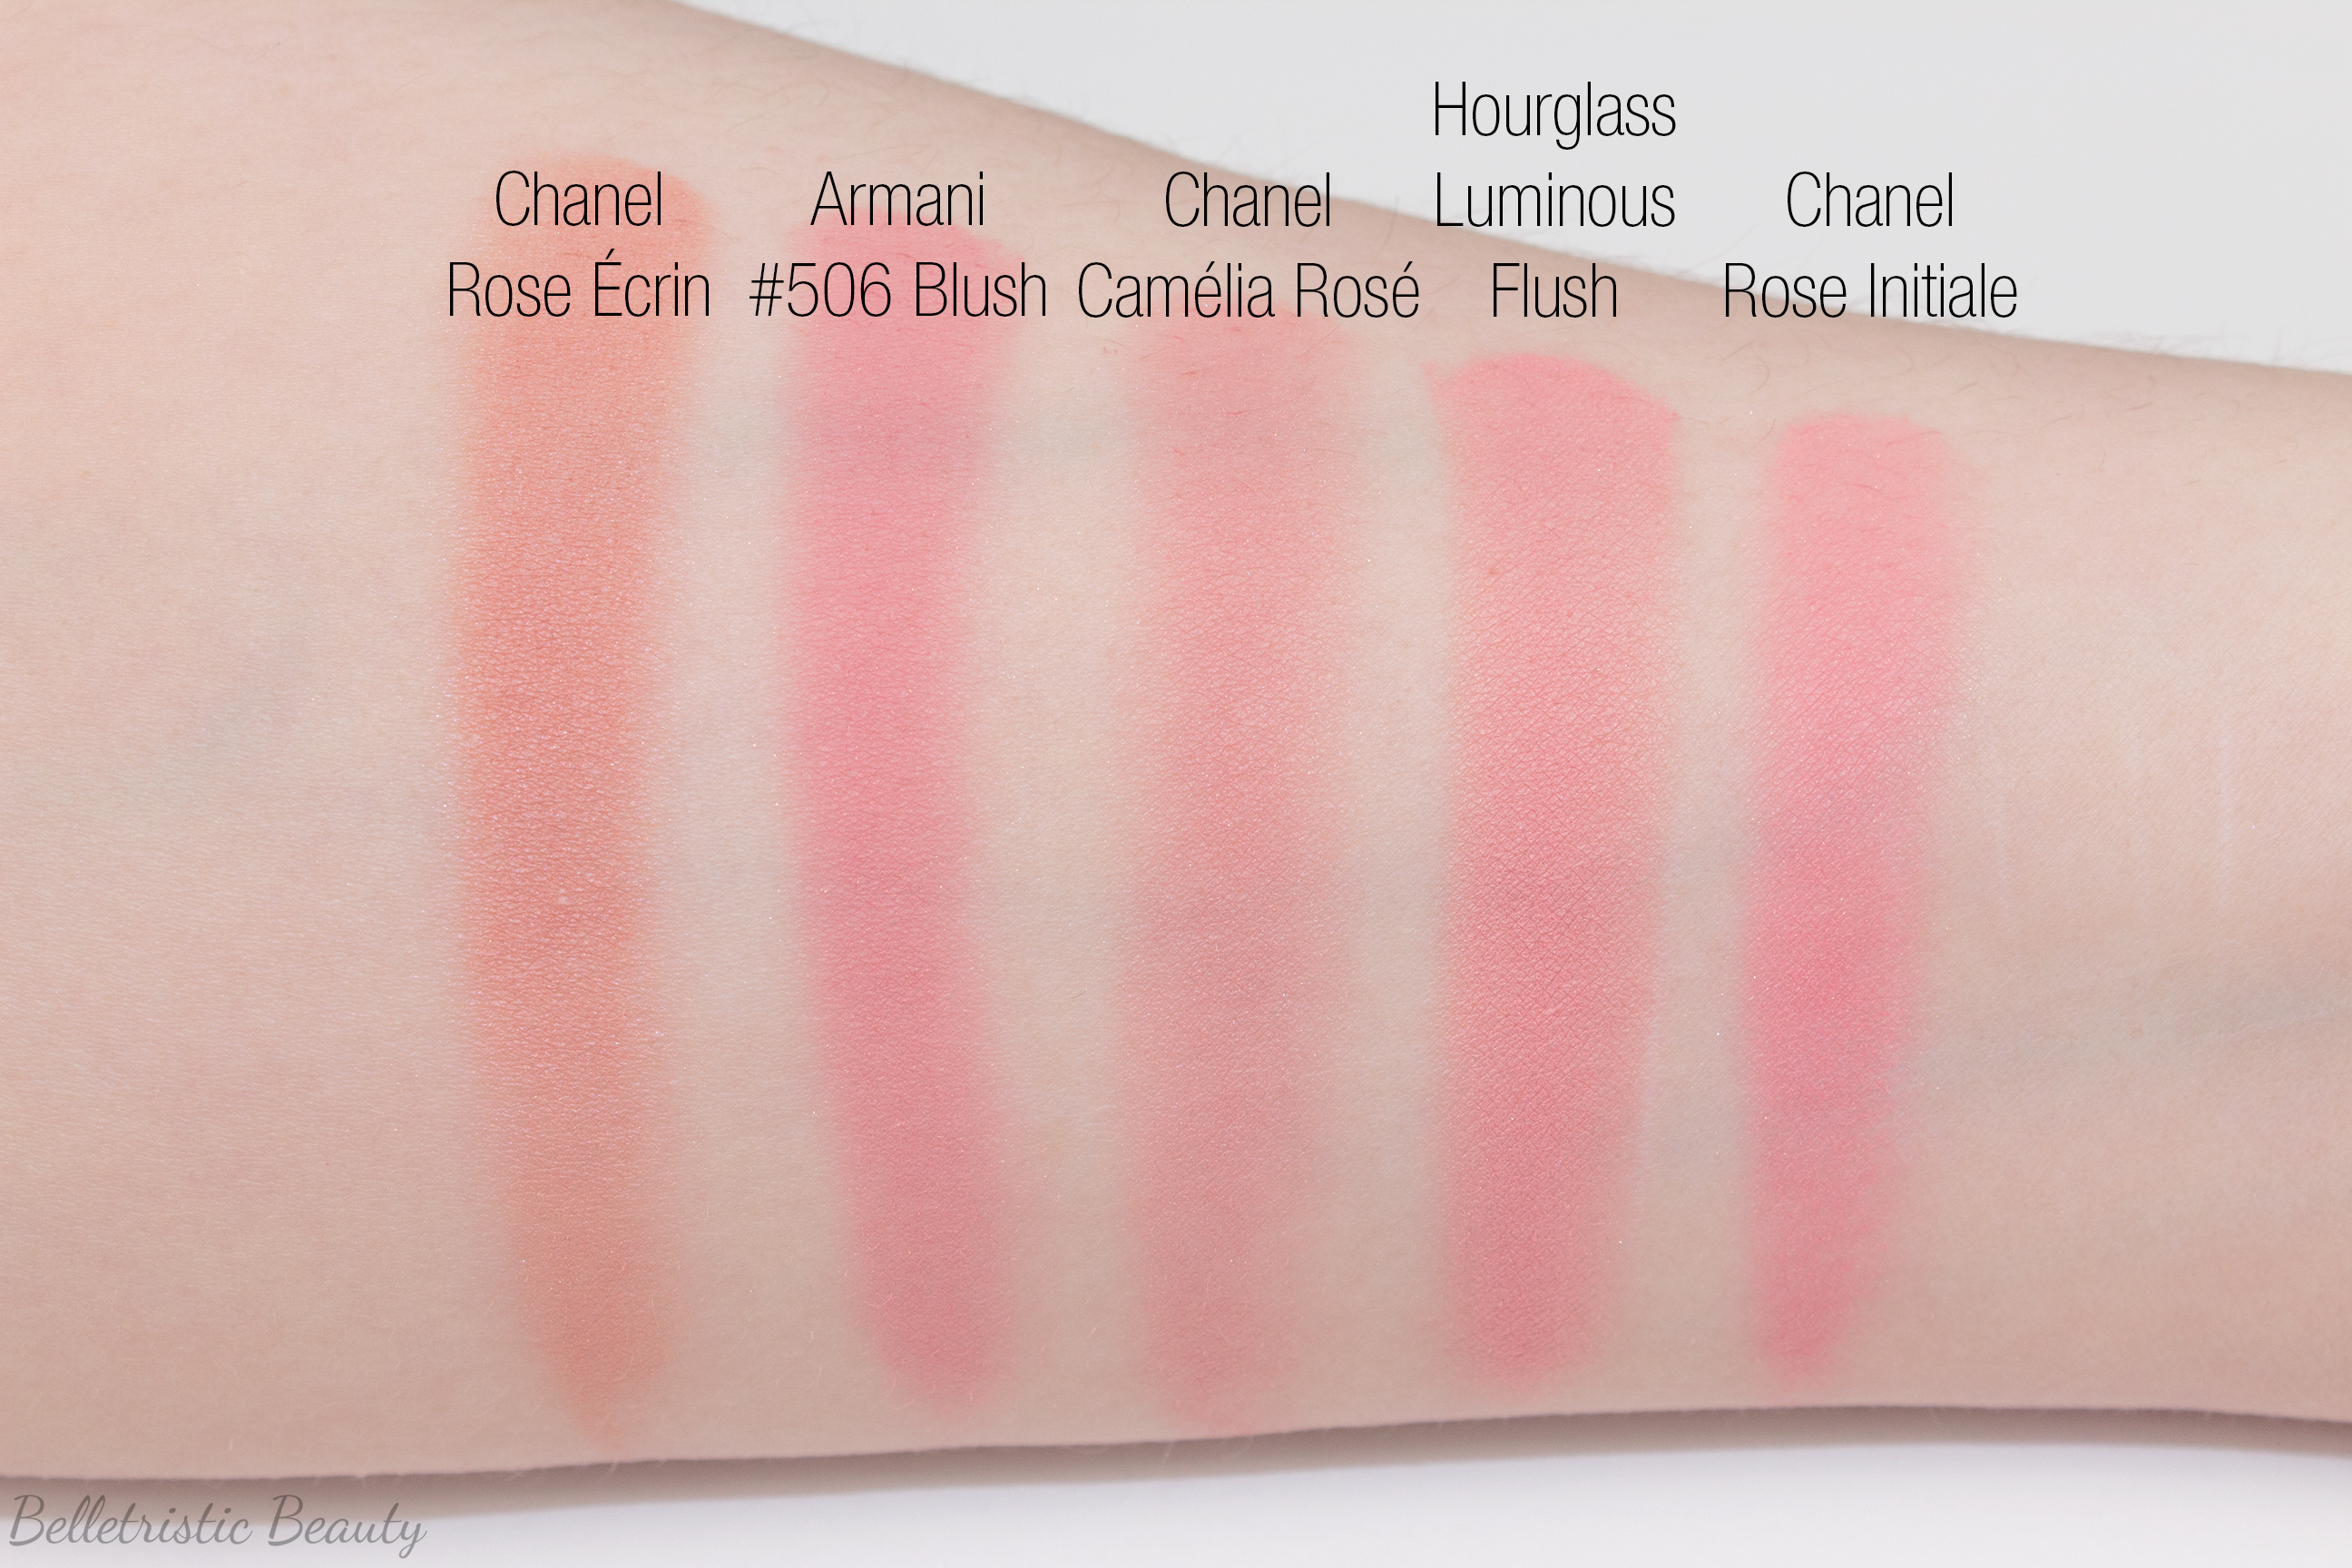 Chanel jardin de chanel blush cam lia ros r verie for Jardin de chanel blush 2015 kaufen